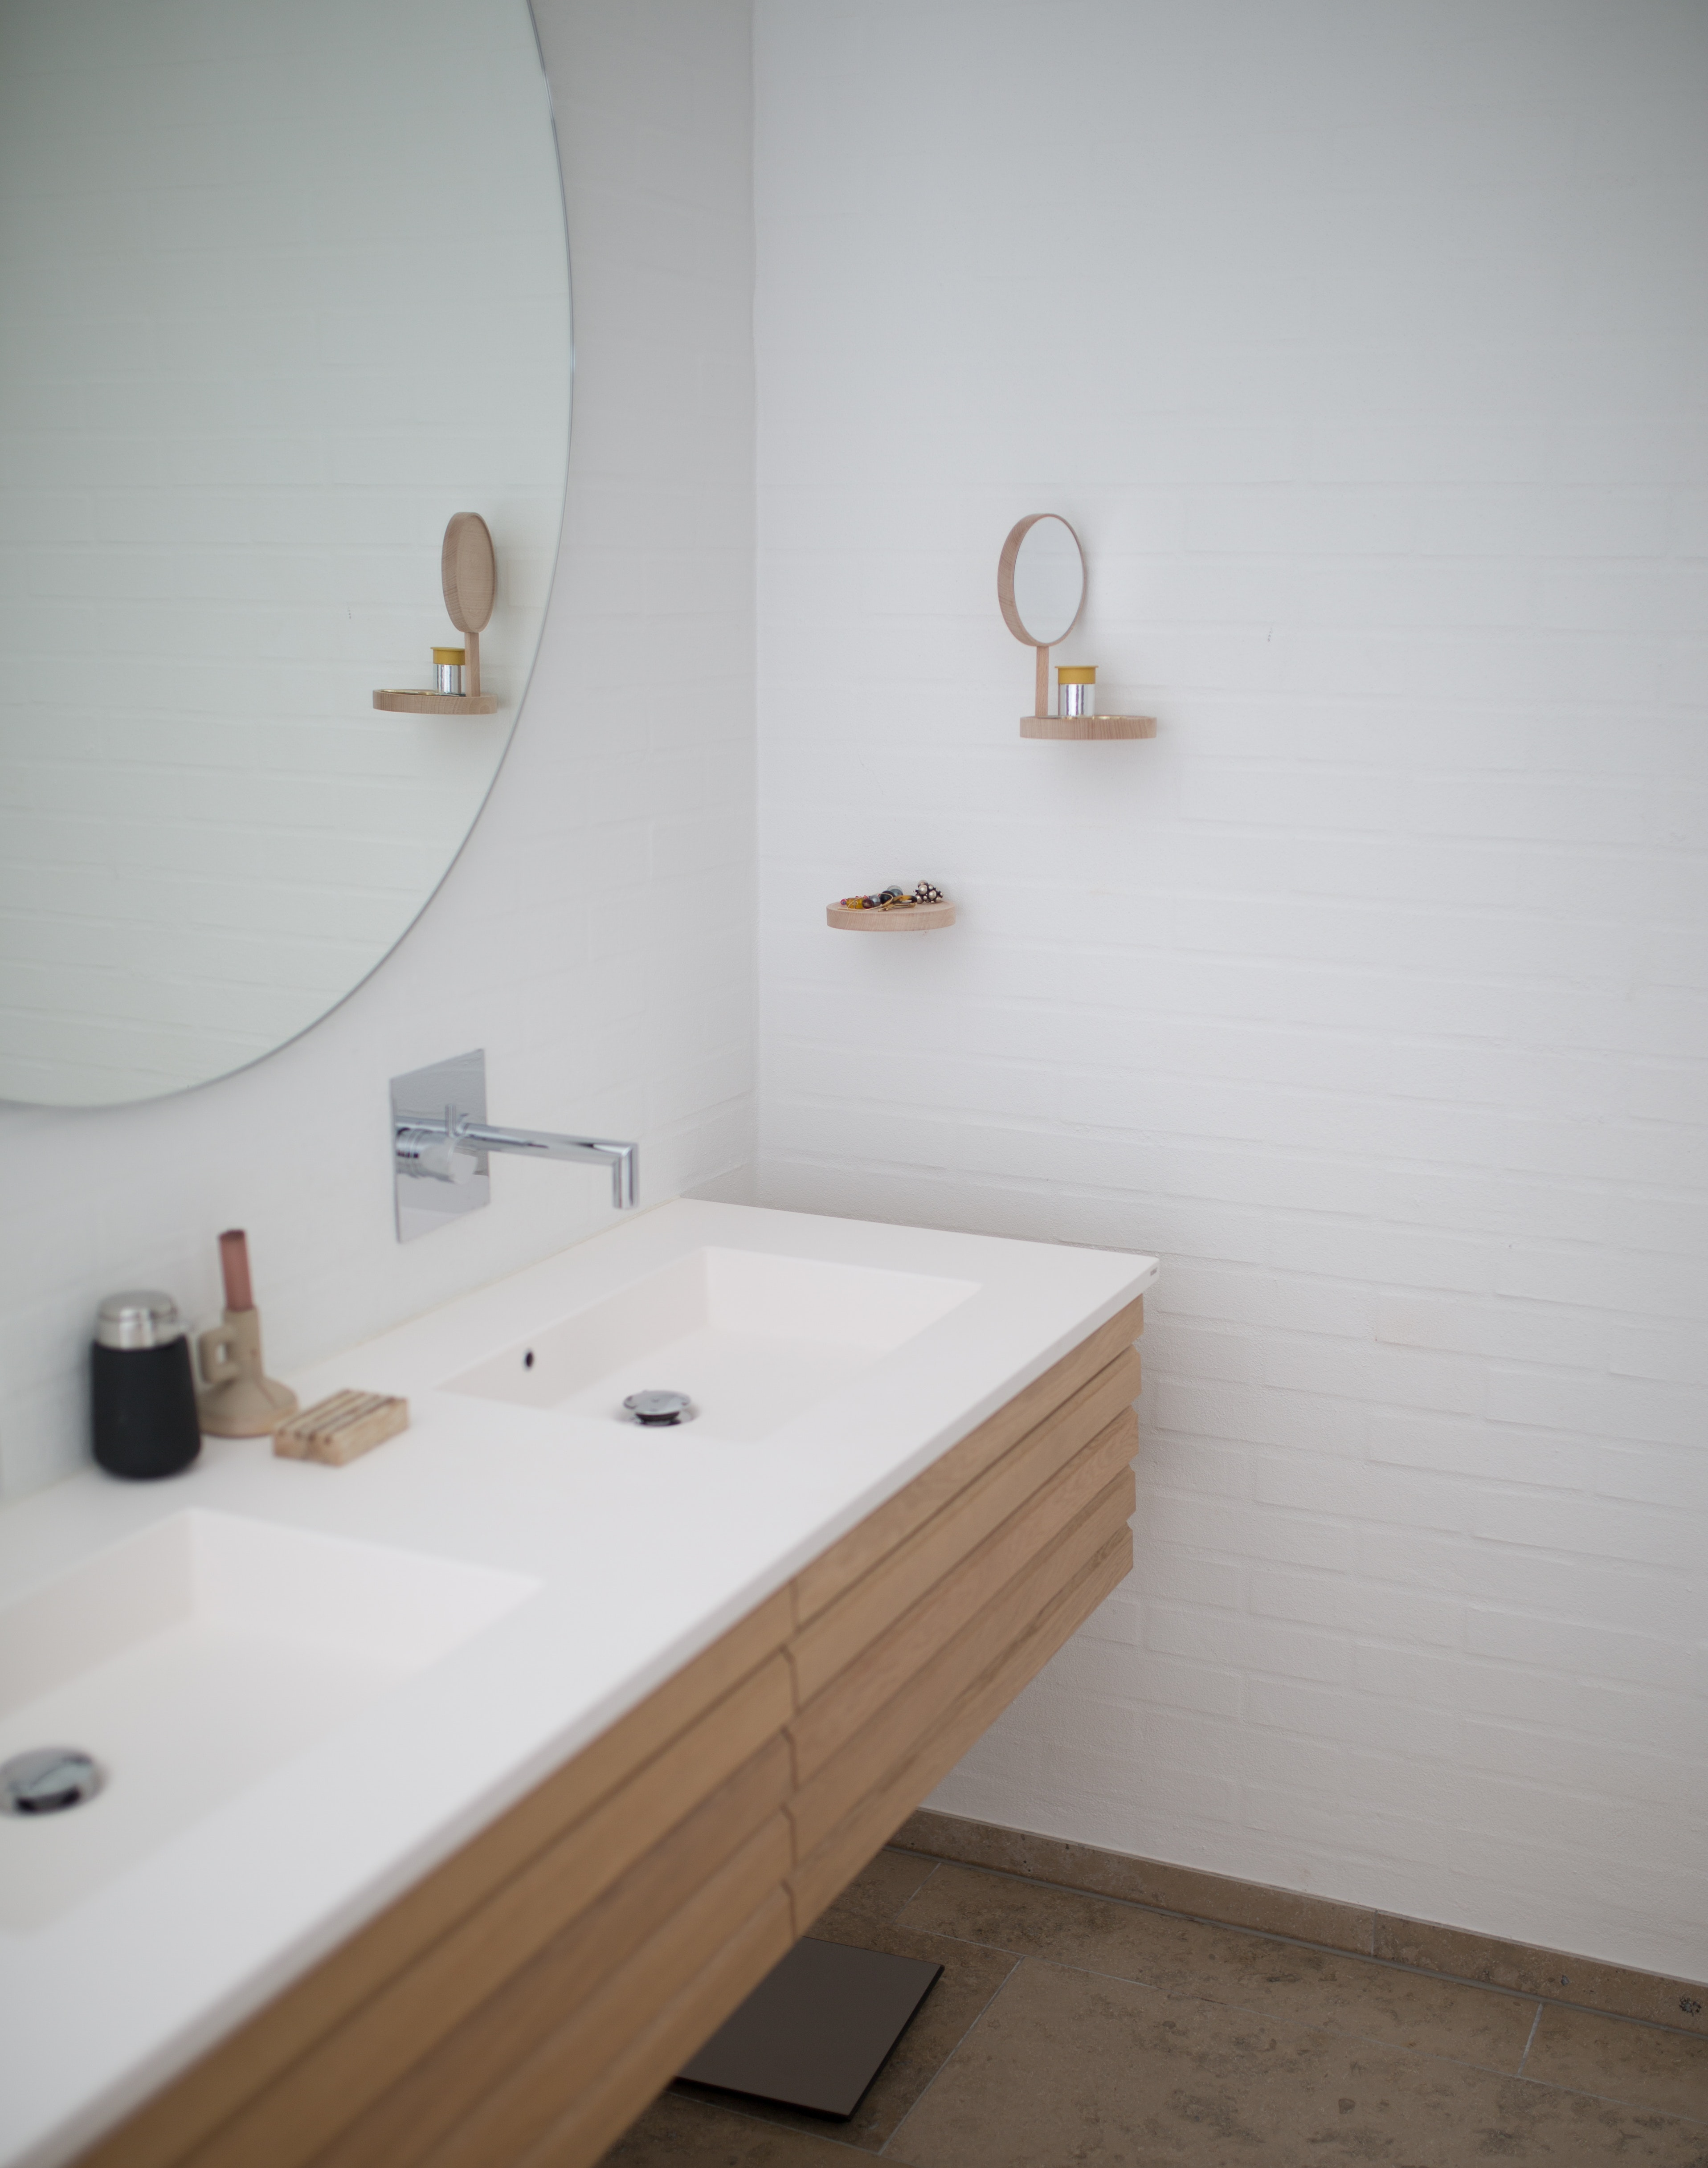 Tips for Taking Your Small Bathroom to the Next Level